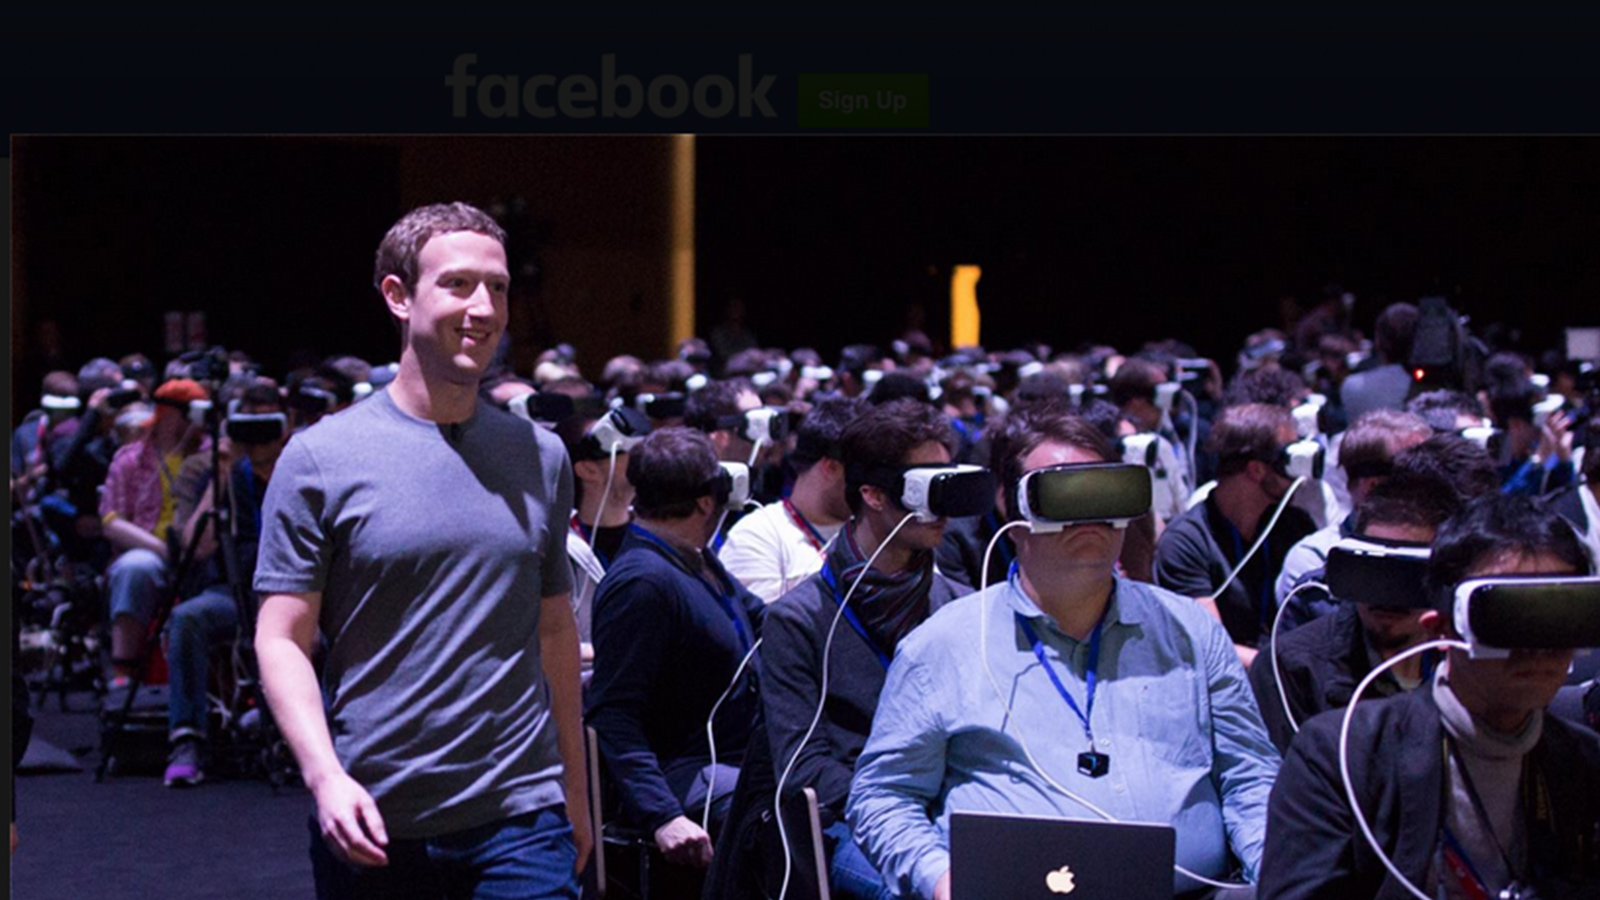 Mark Zuckerberg strolls past his first VR-Zombie army.